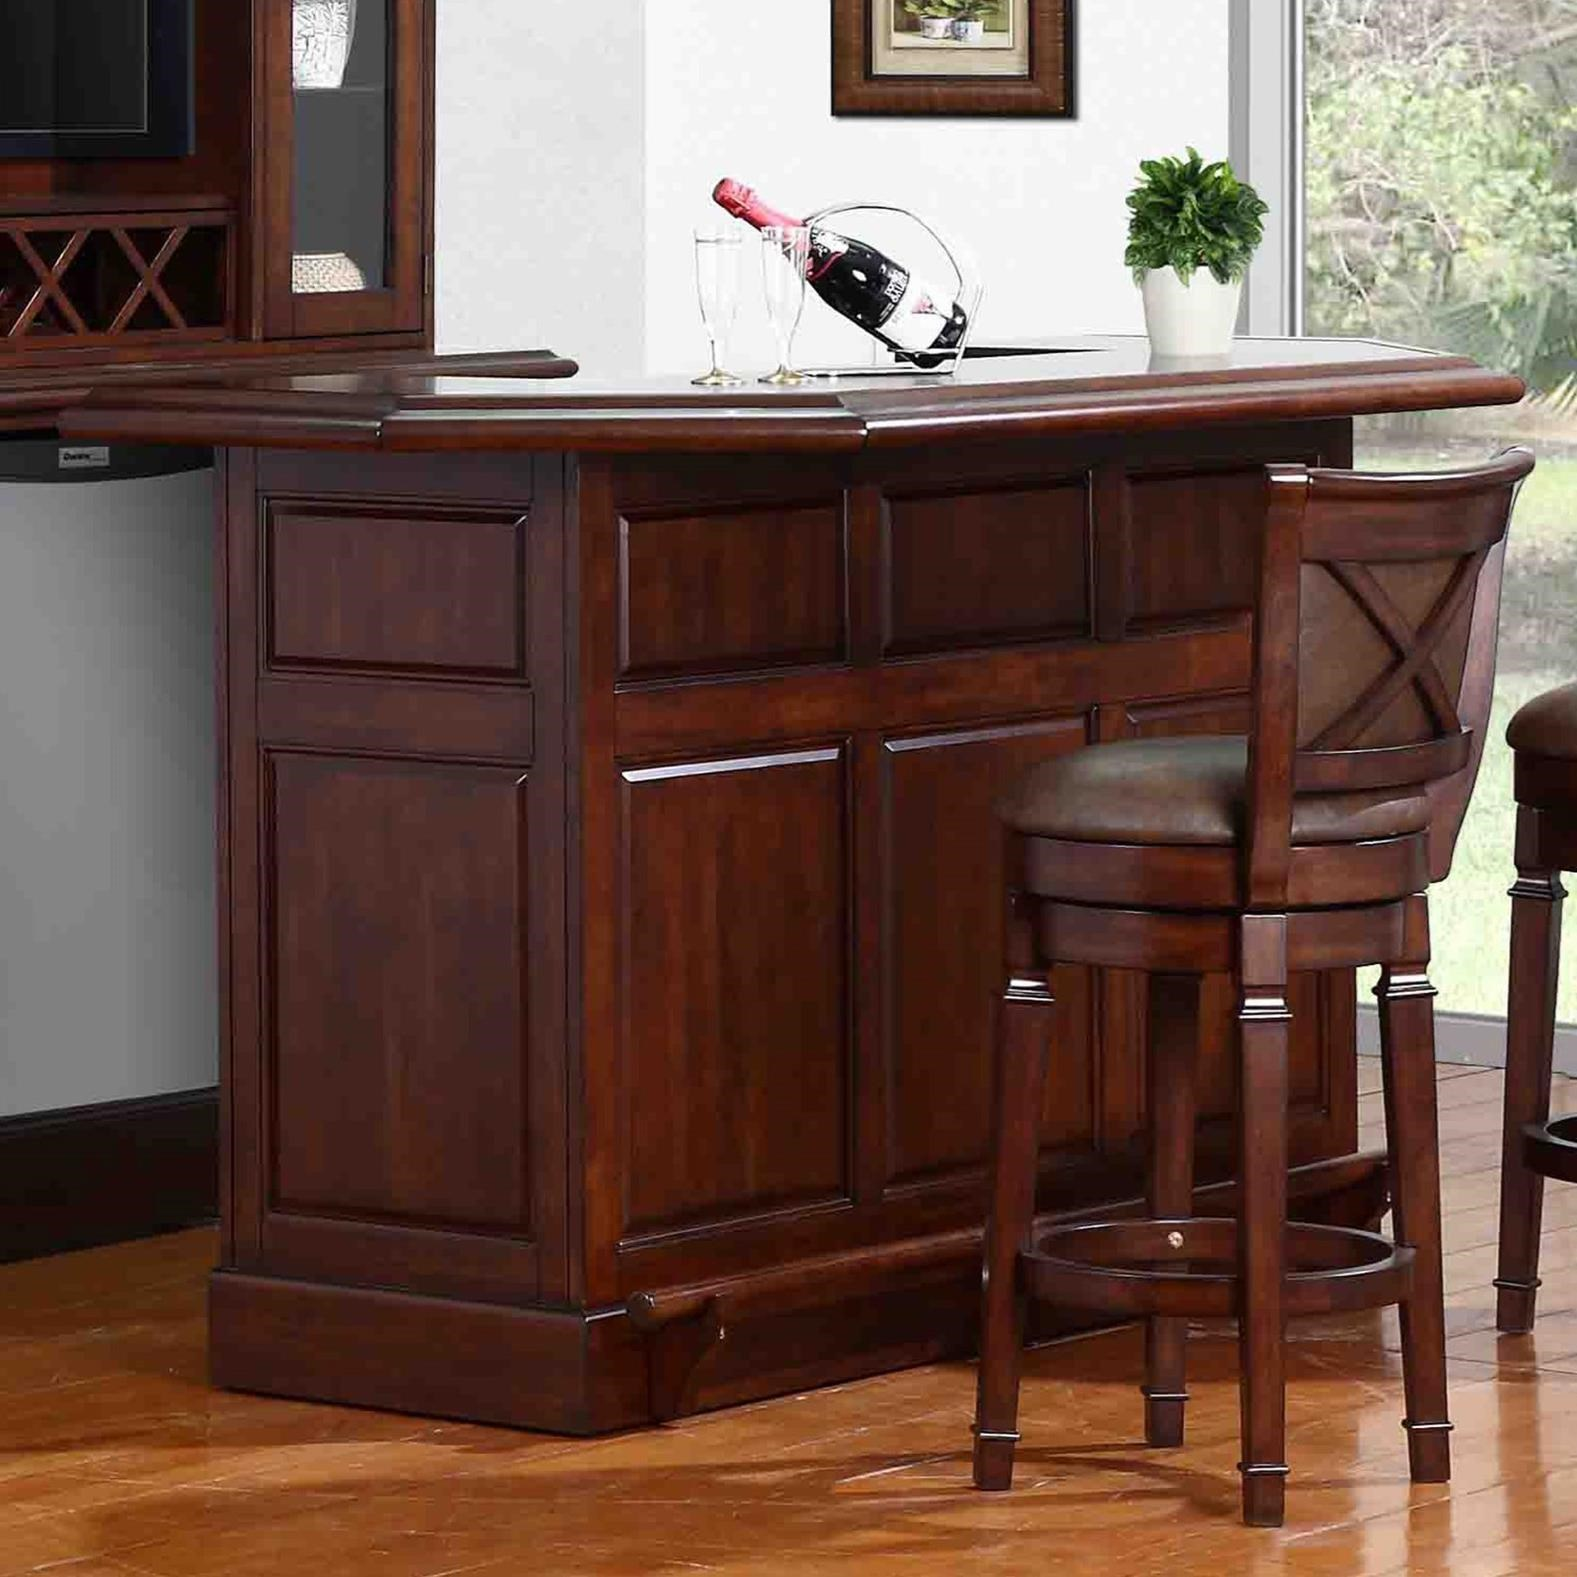 Bar with Built-In Wine Rack